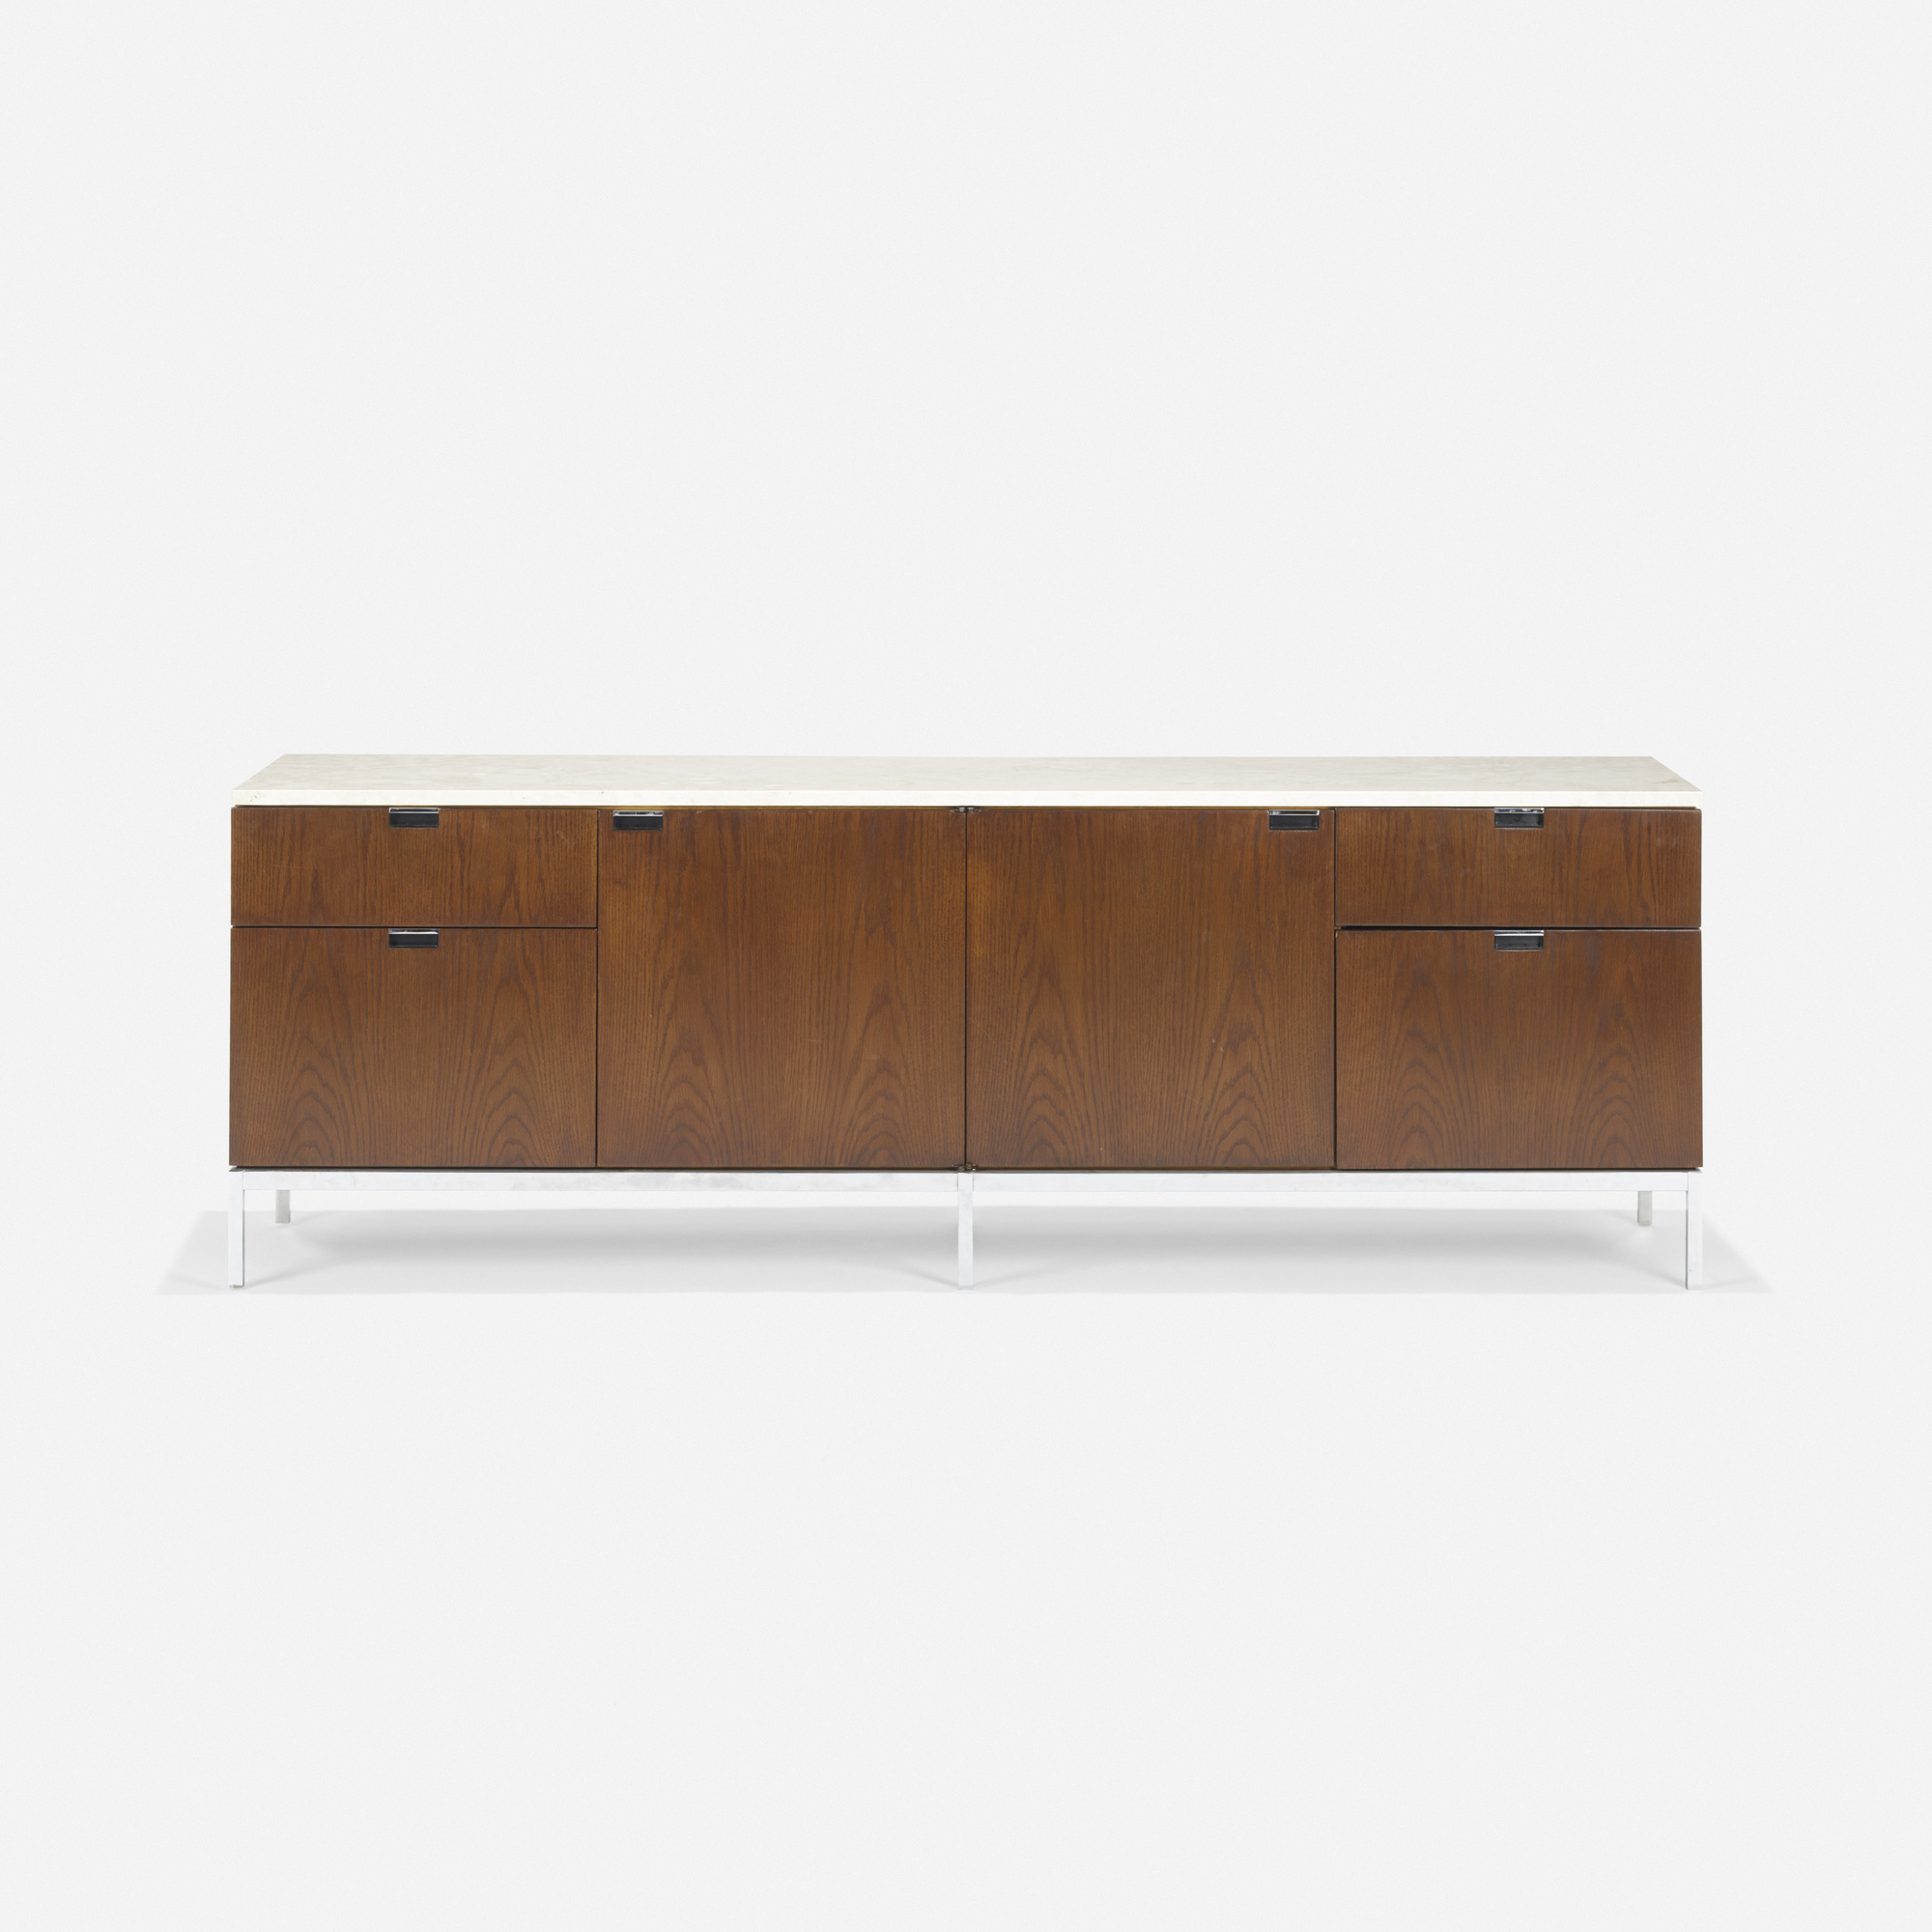 149: Florence Knoll / Executive Office cabinet < American Design ...